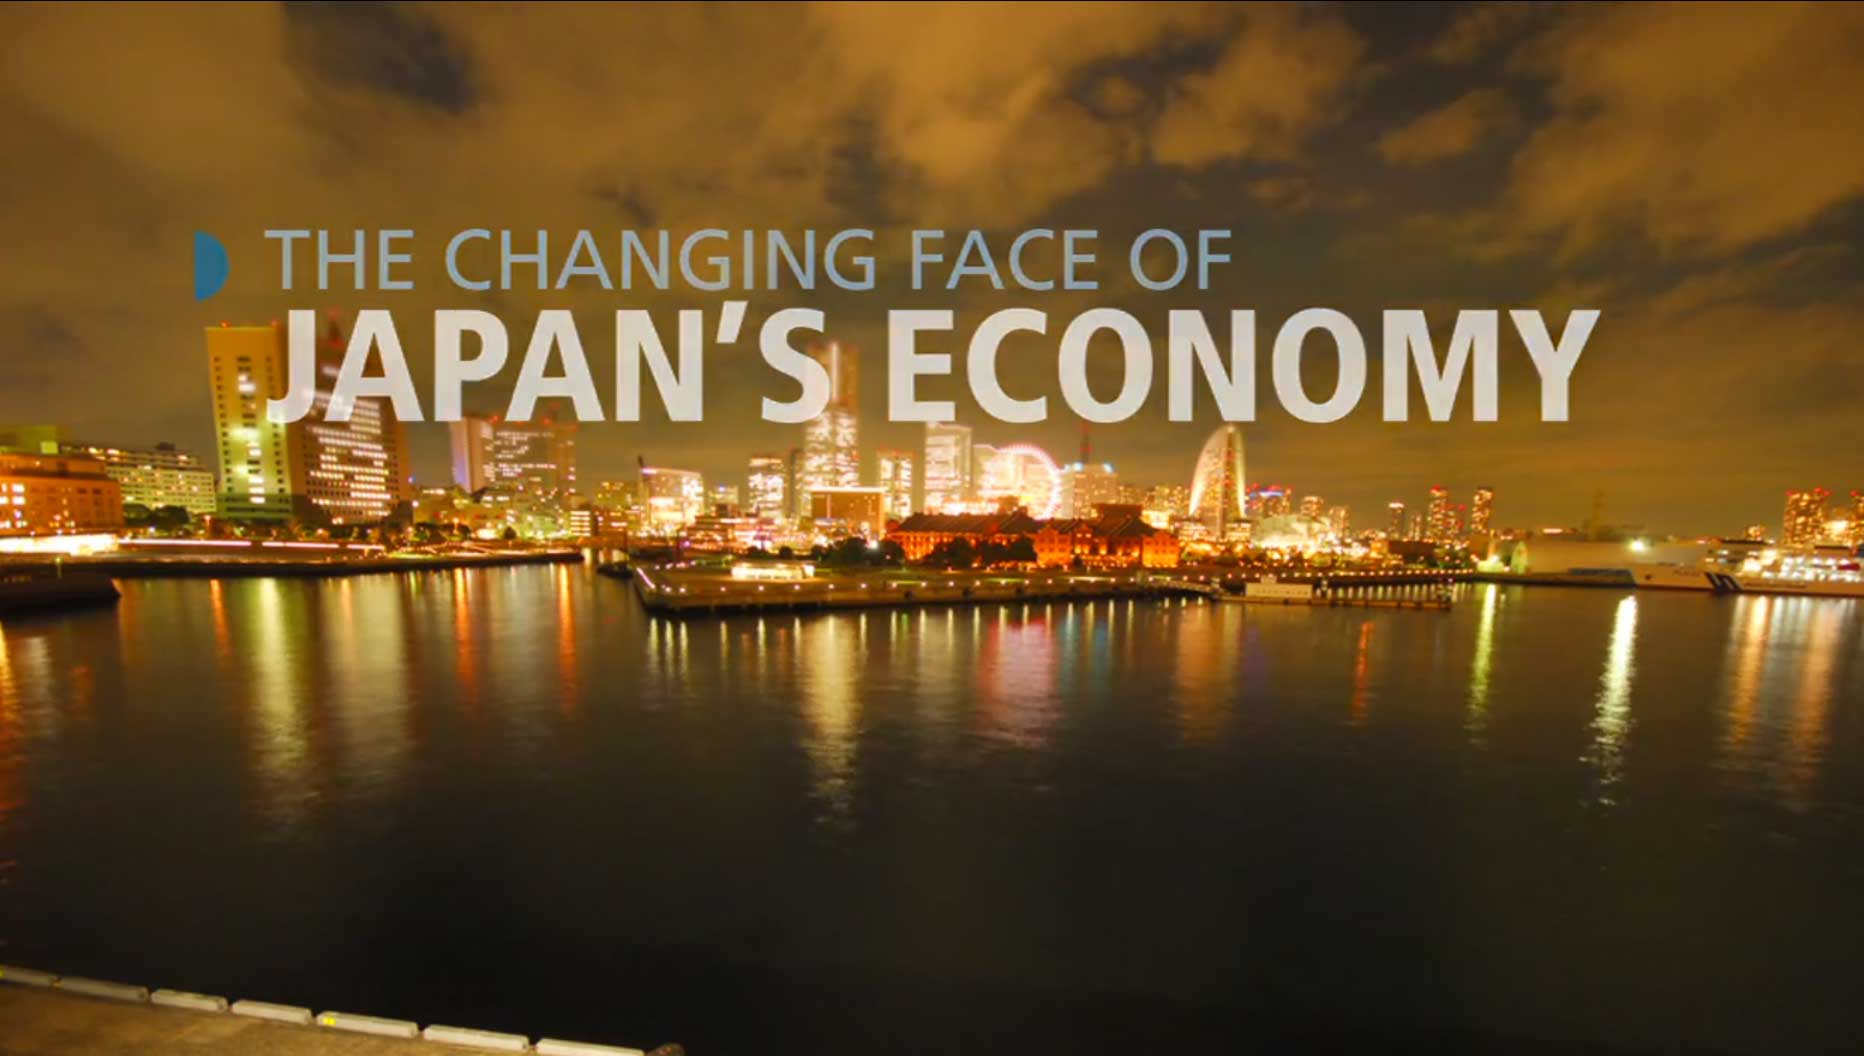 The Changing Face of Japan's Economy